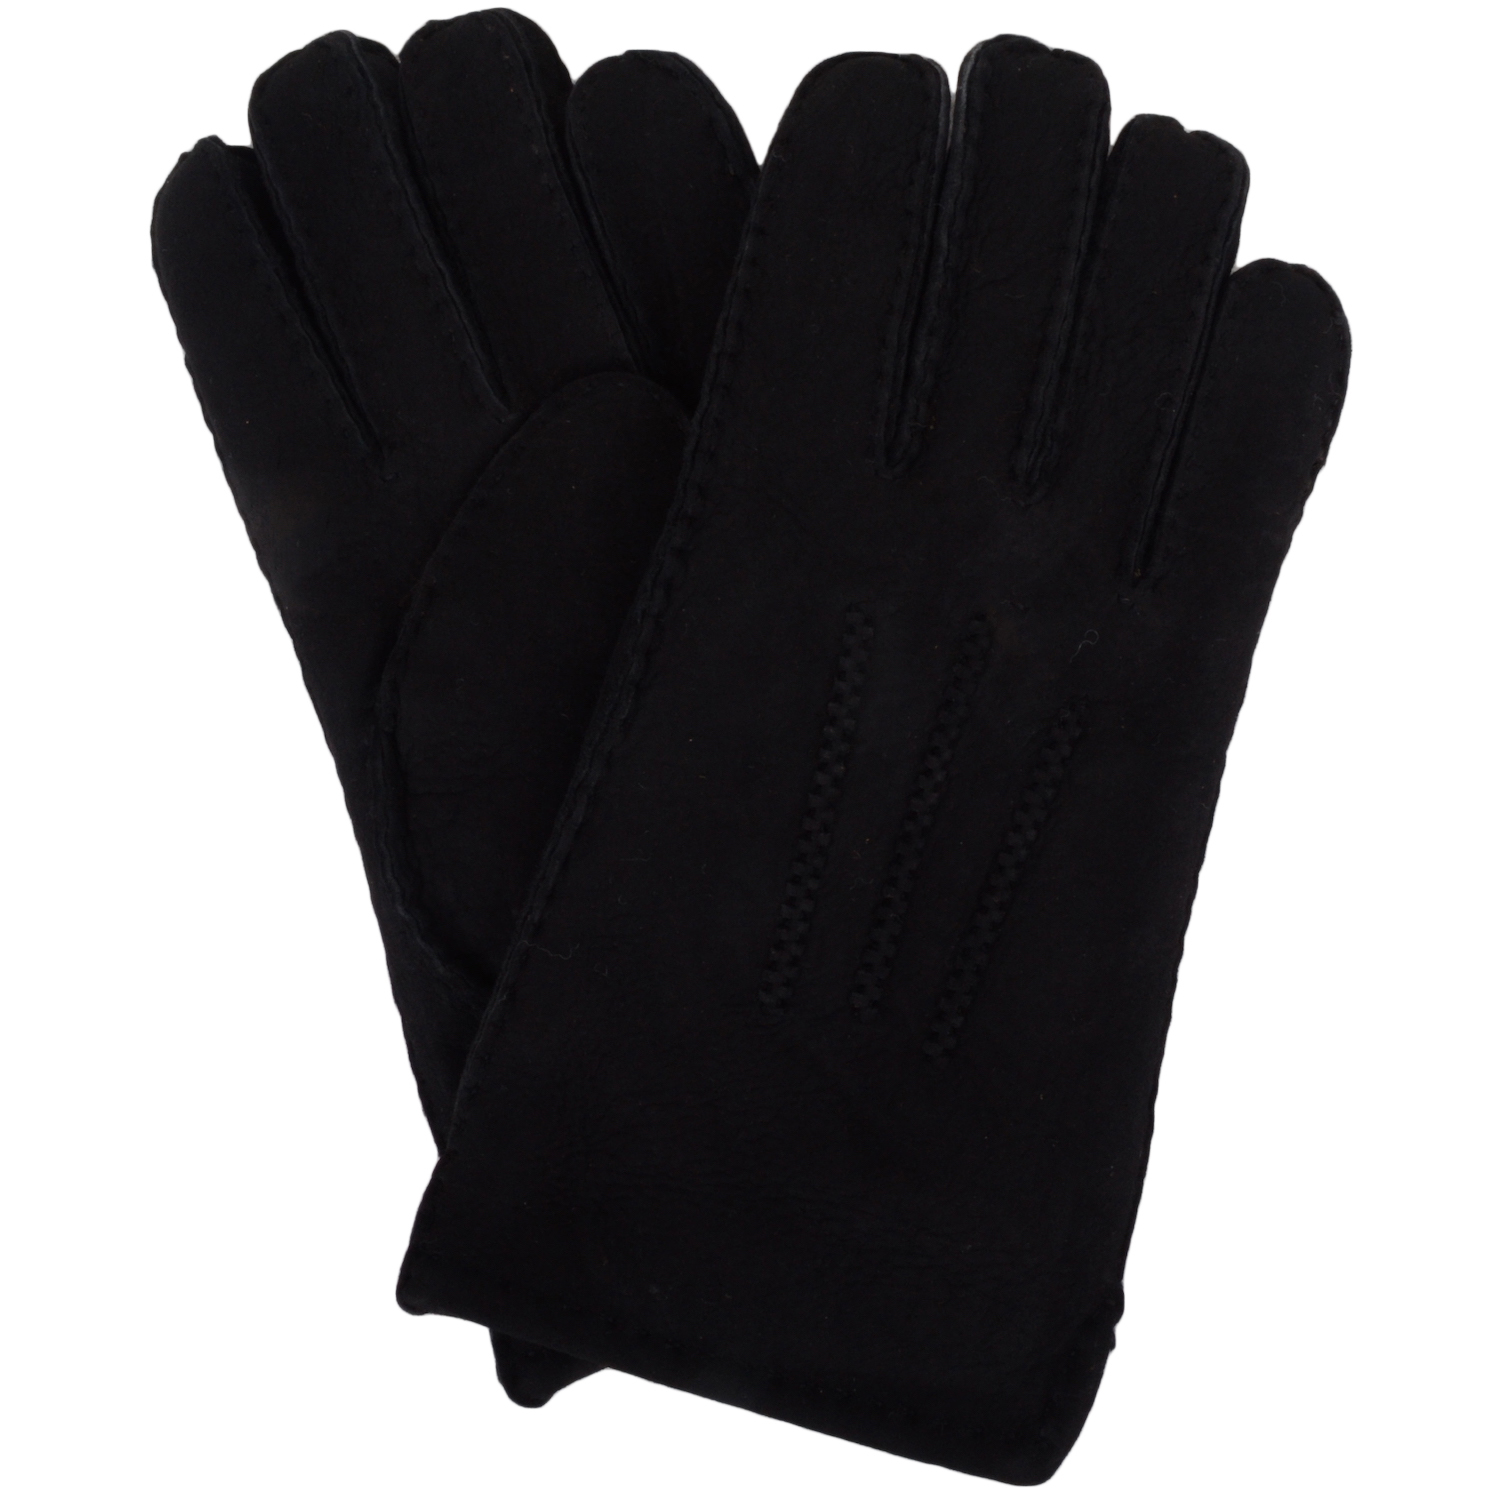 Full Sheepskin Gloves - Black